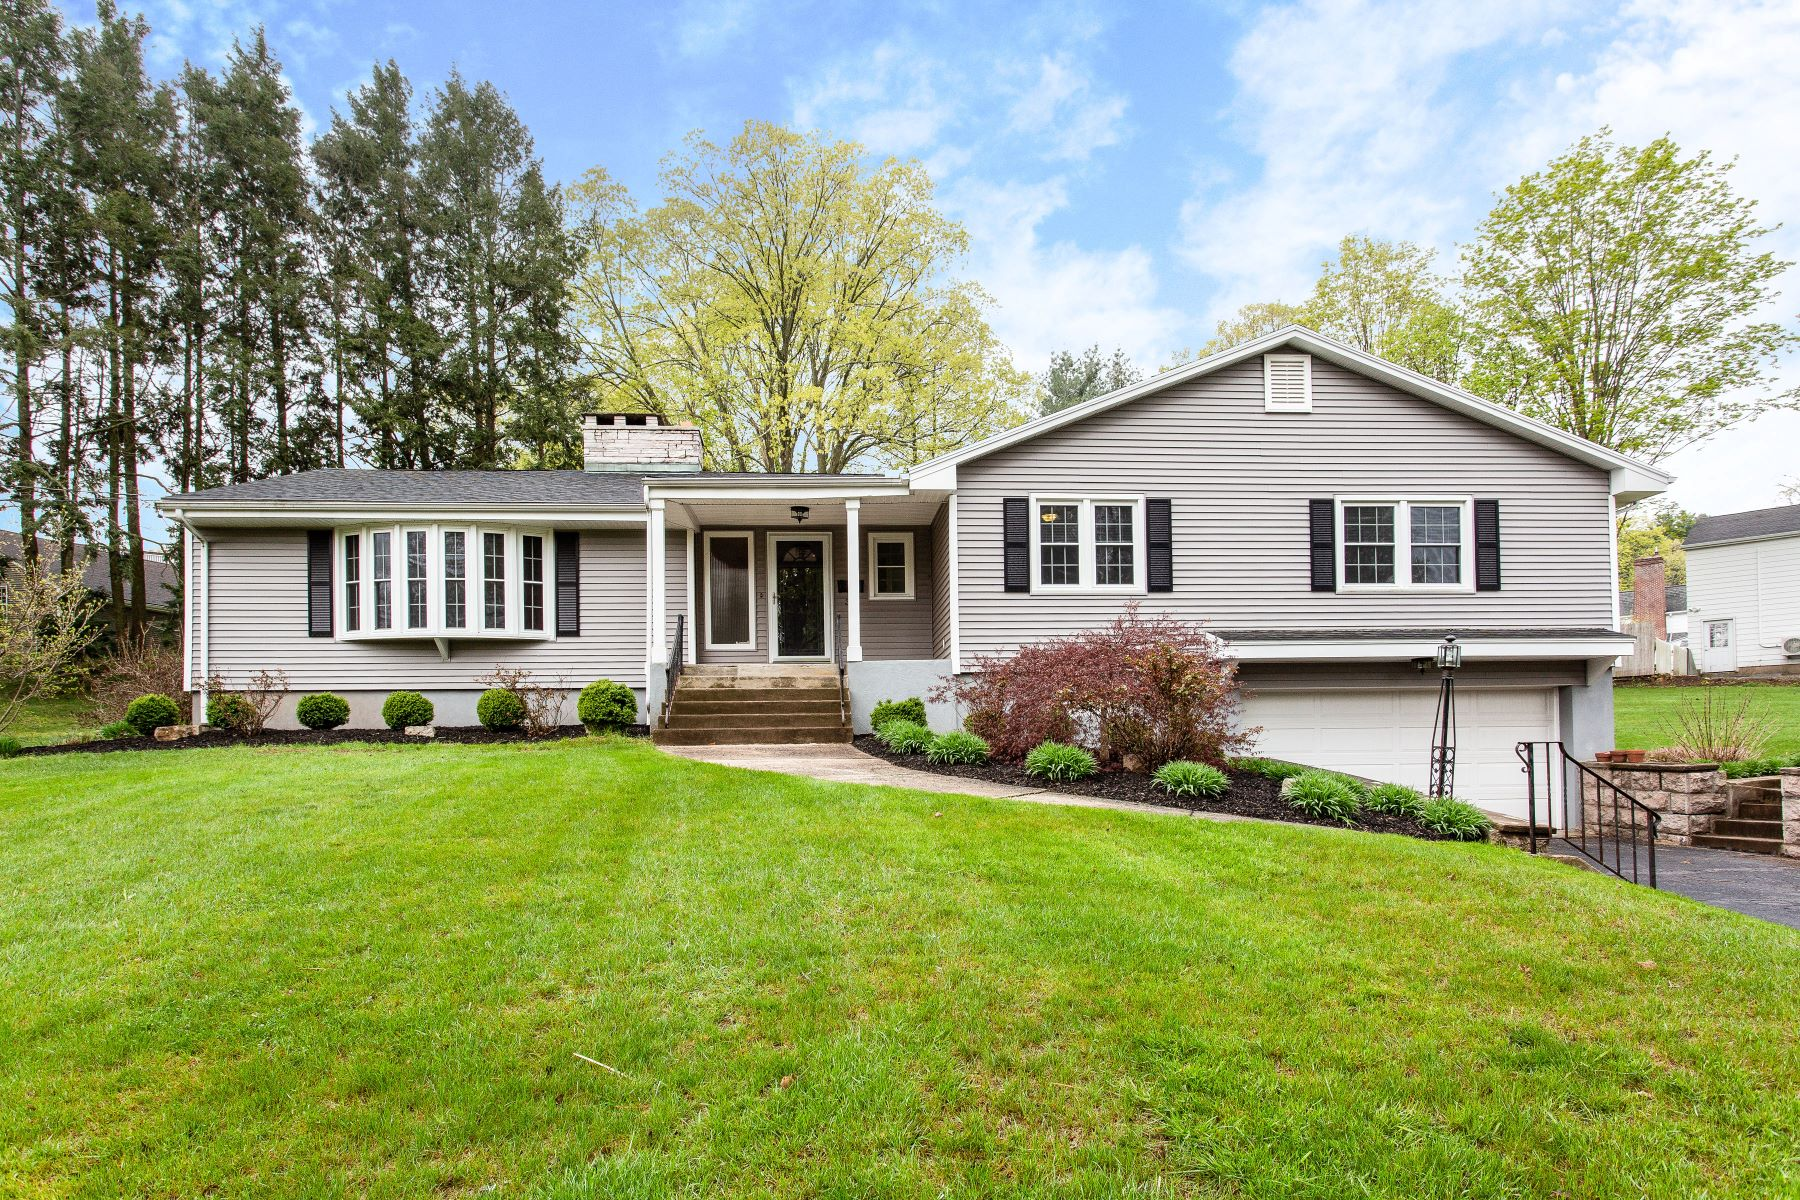 Single Family Homes for Active at Sprawling Ranch Has So Much To Offer! 33 York Road New Britain, Connecticut 06052 United States